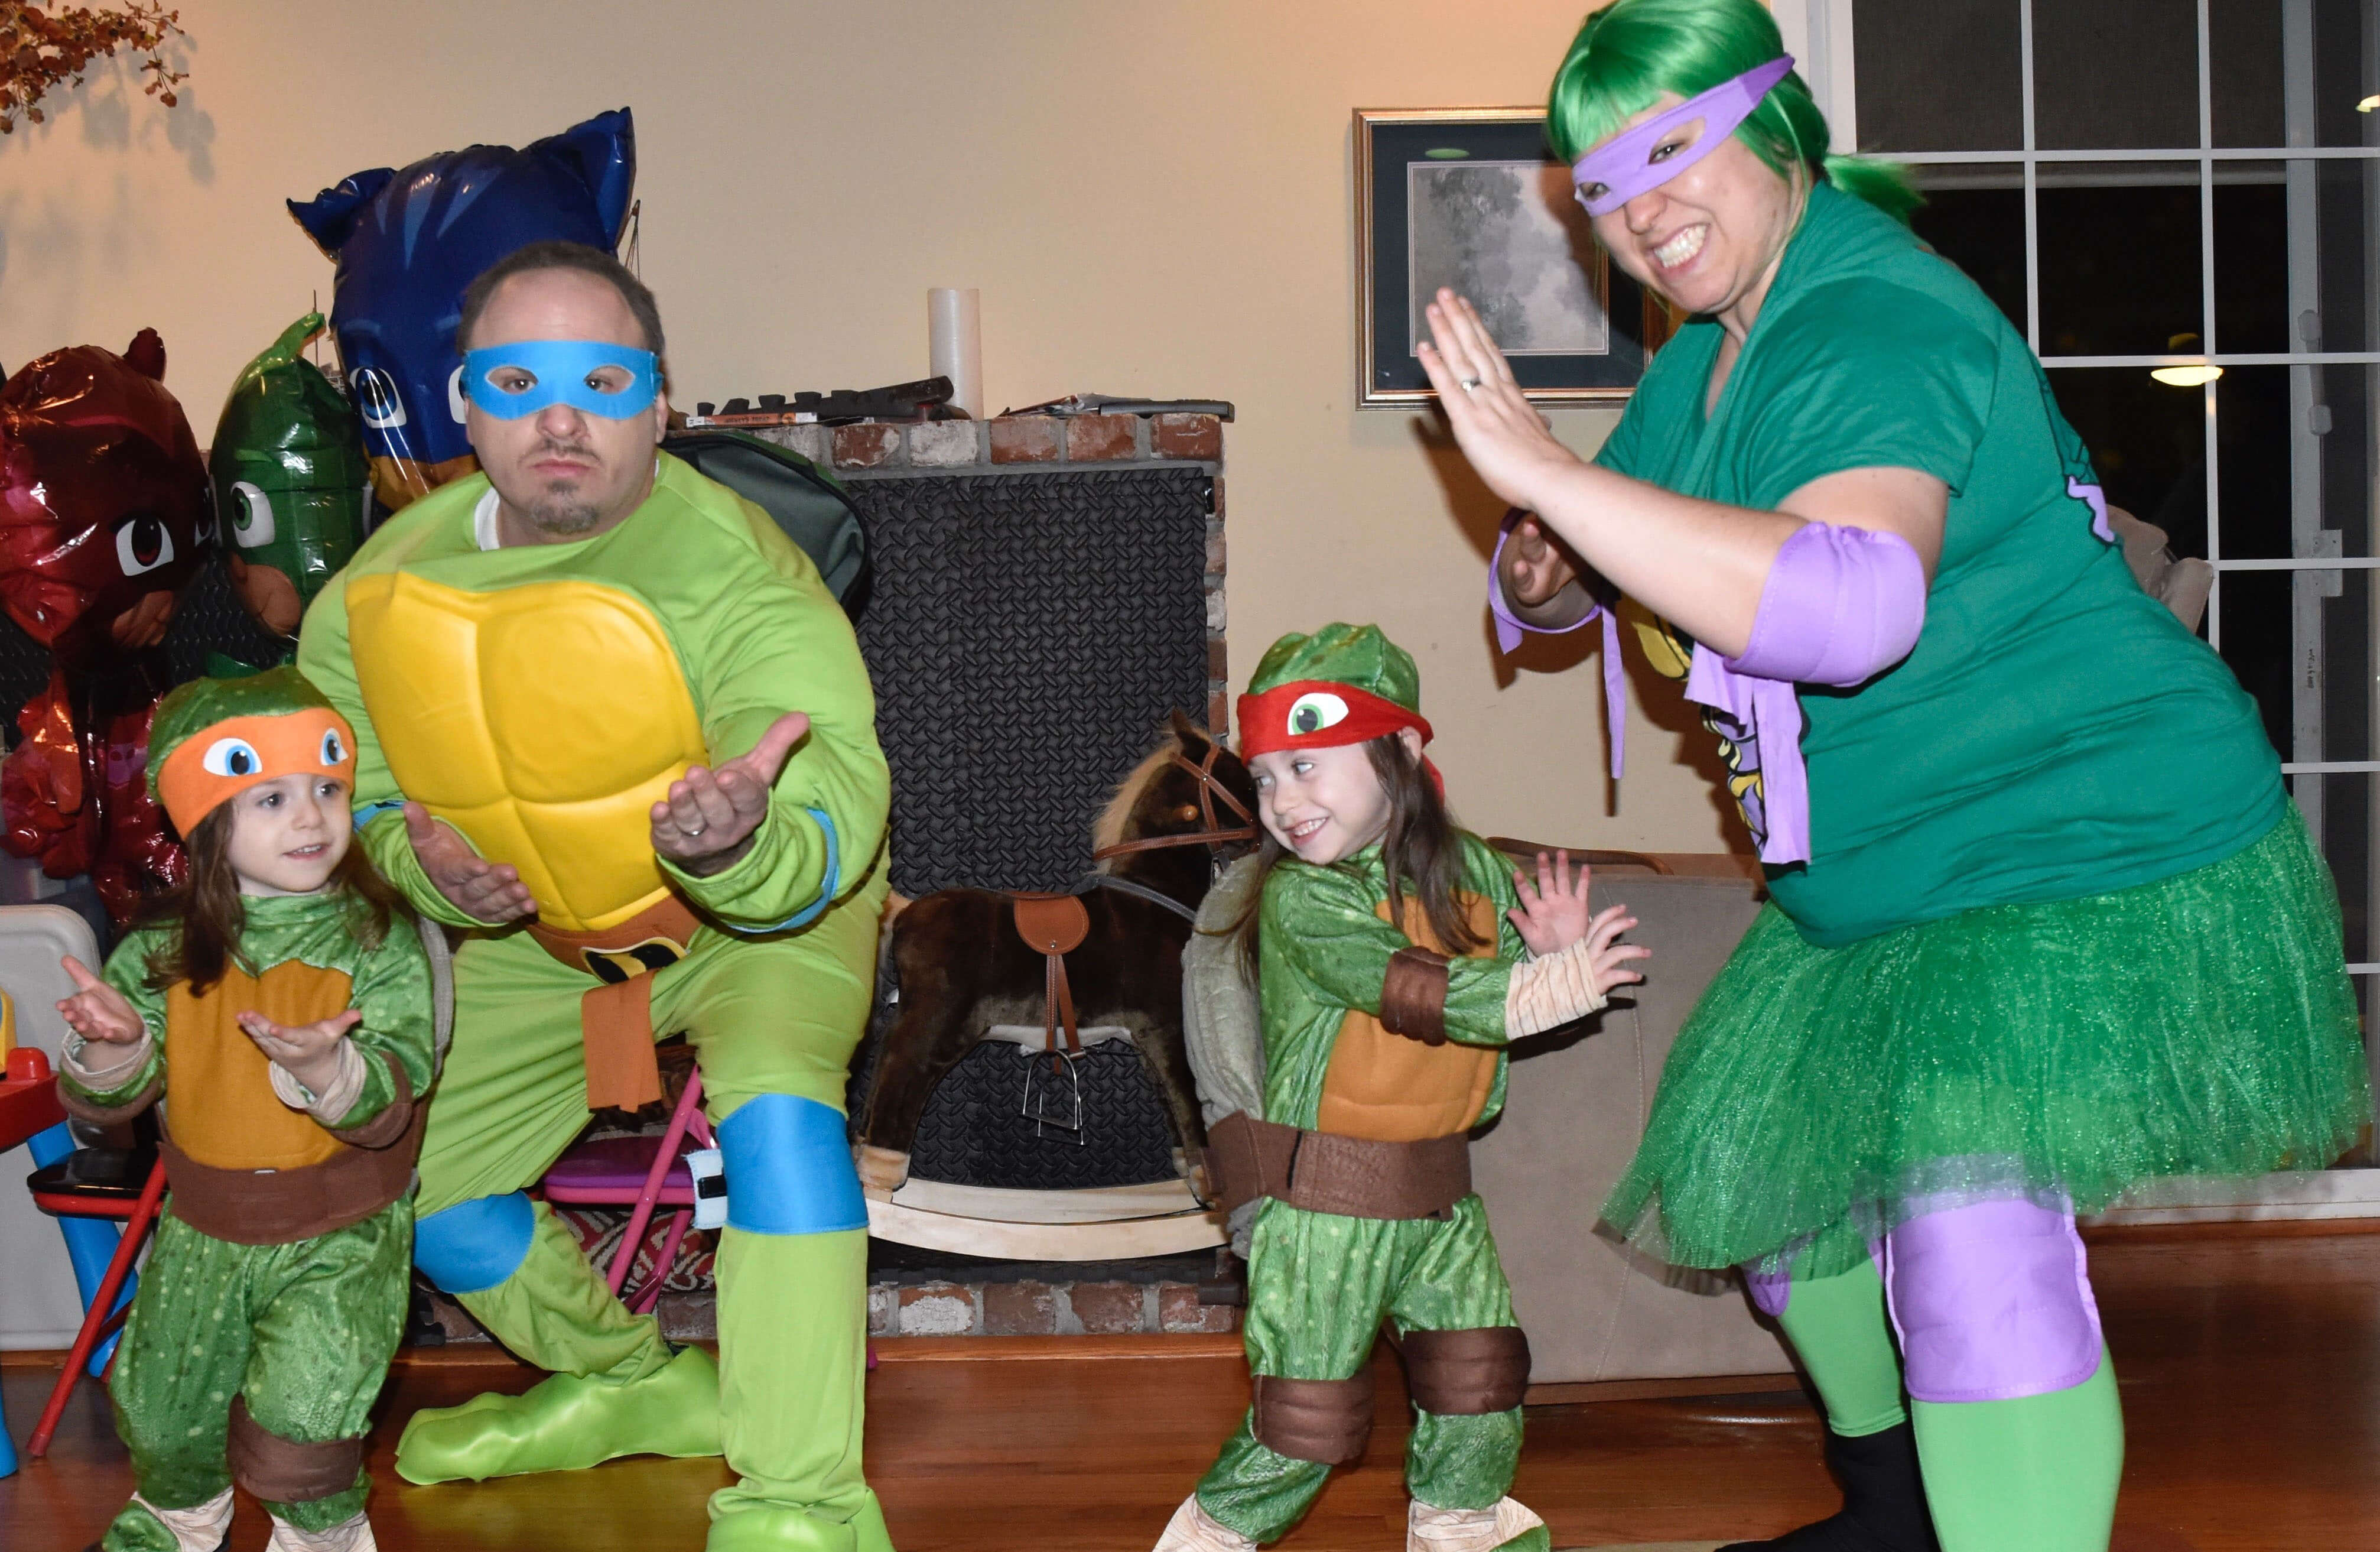 Ultimate Ninja-spirit from one of our Con Scholarship winners and her family.